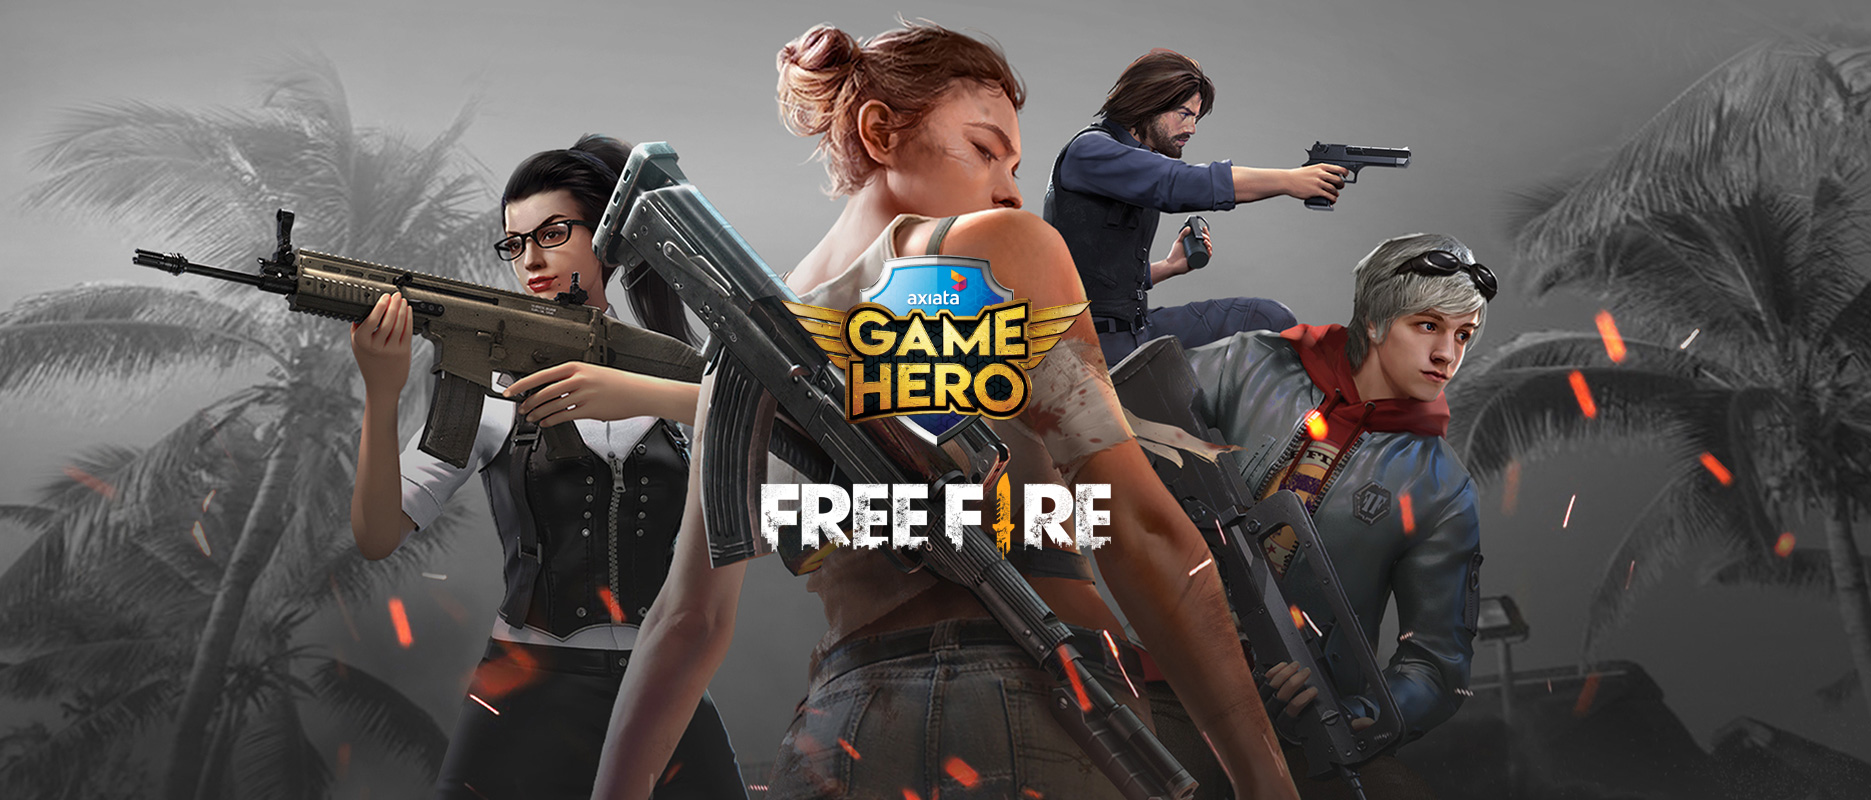 free-fire-axiata-game-hero